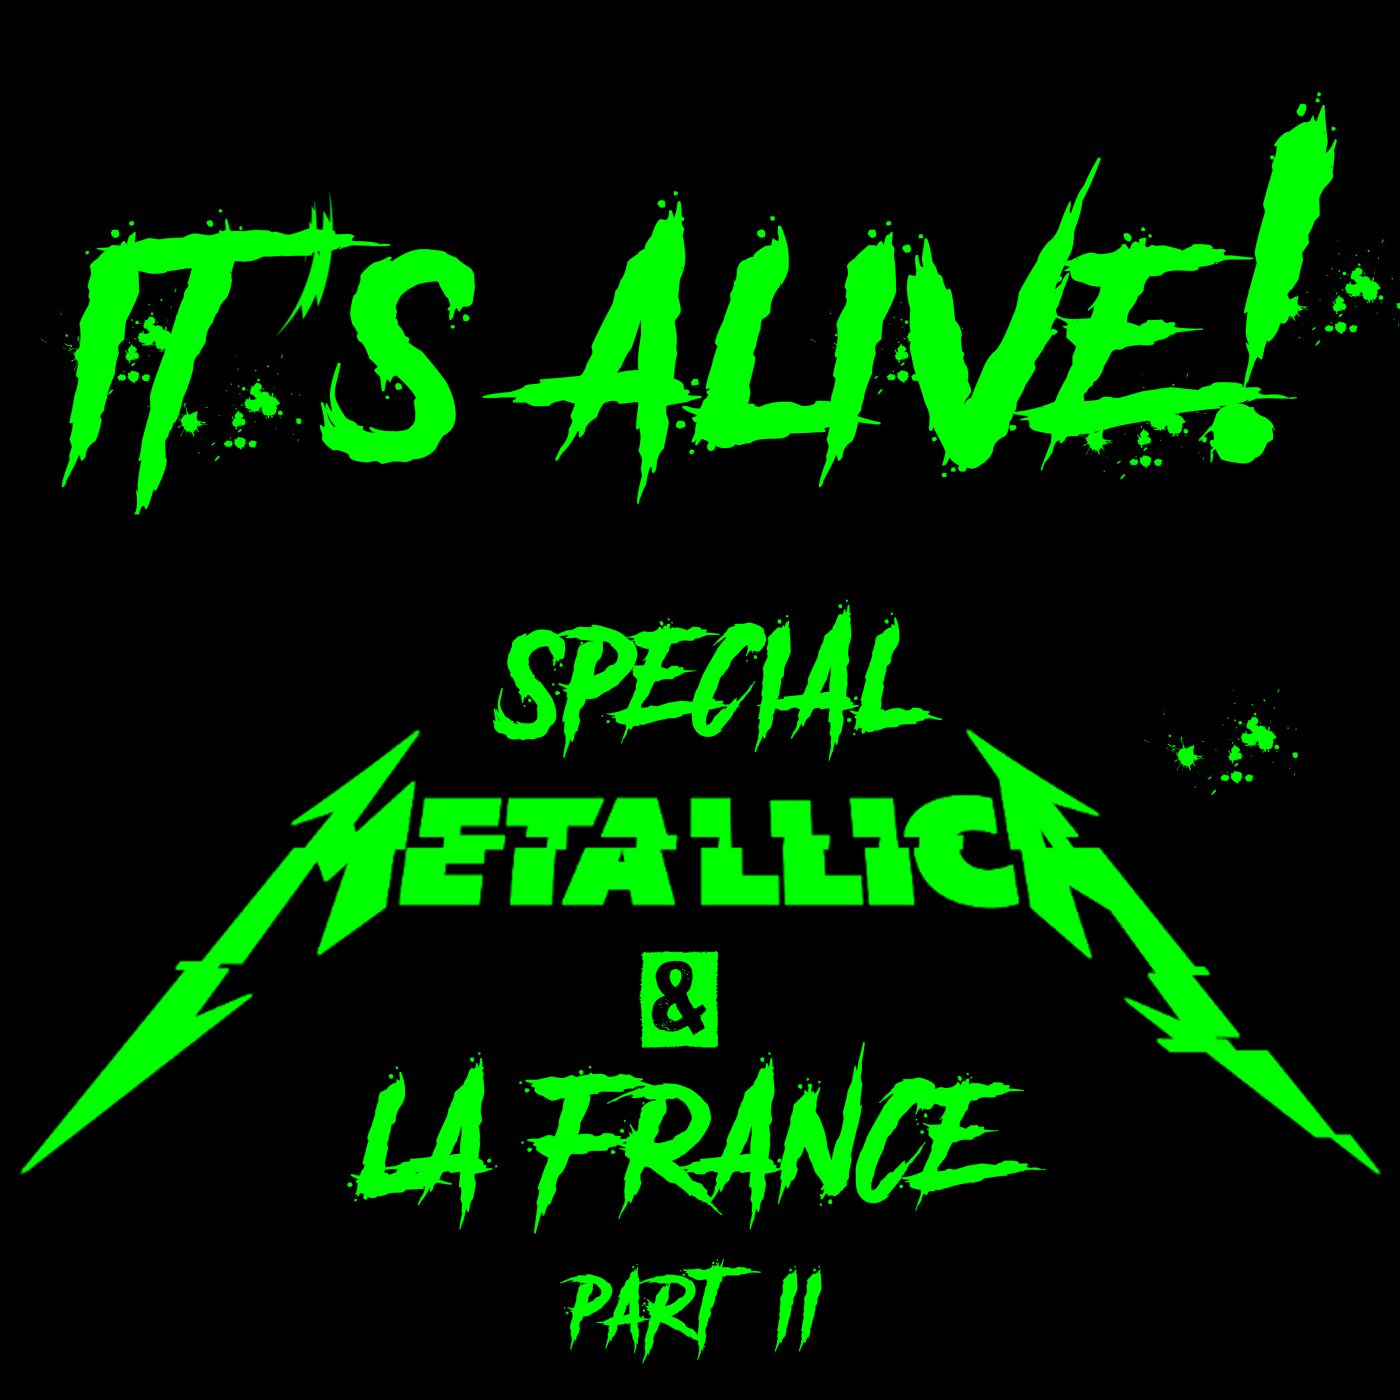 It's Alive! Special Metallica Part.2